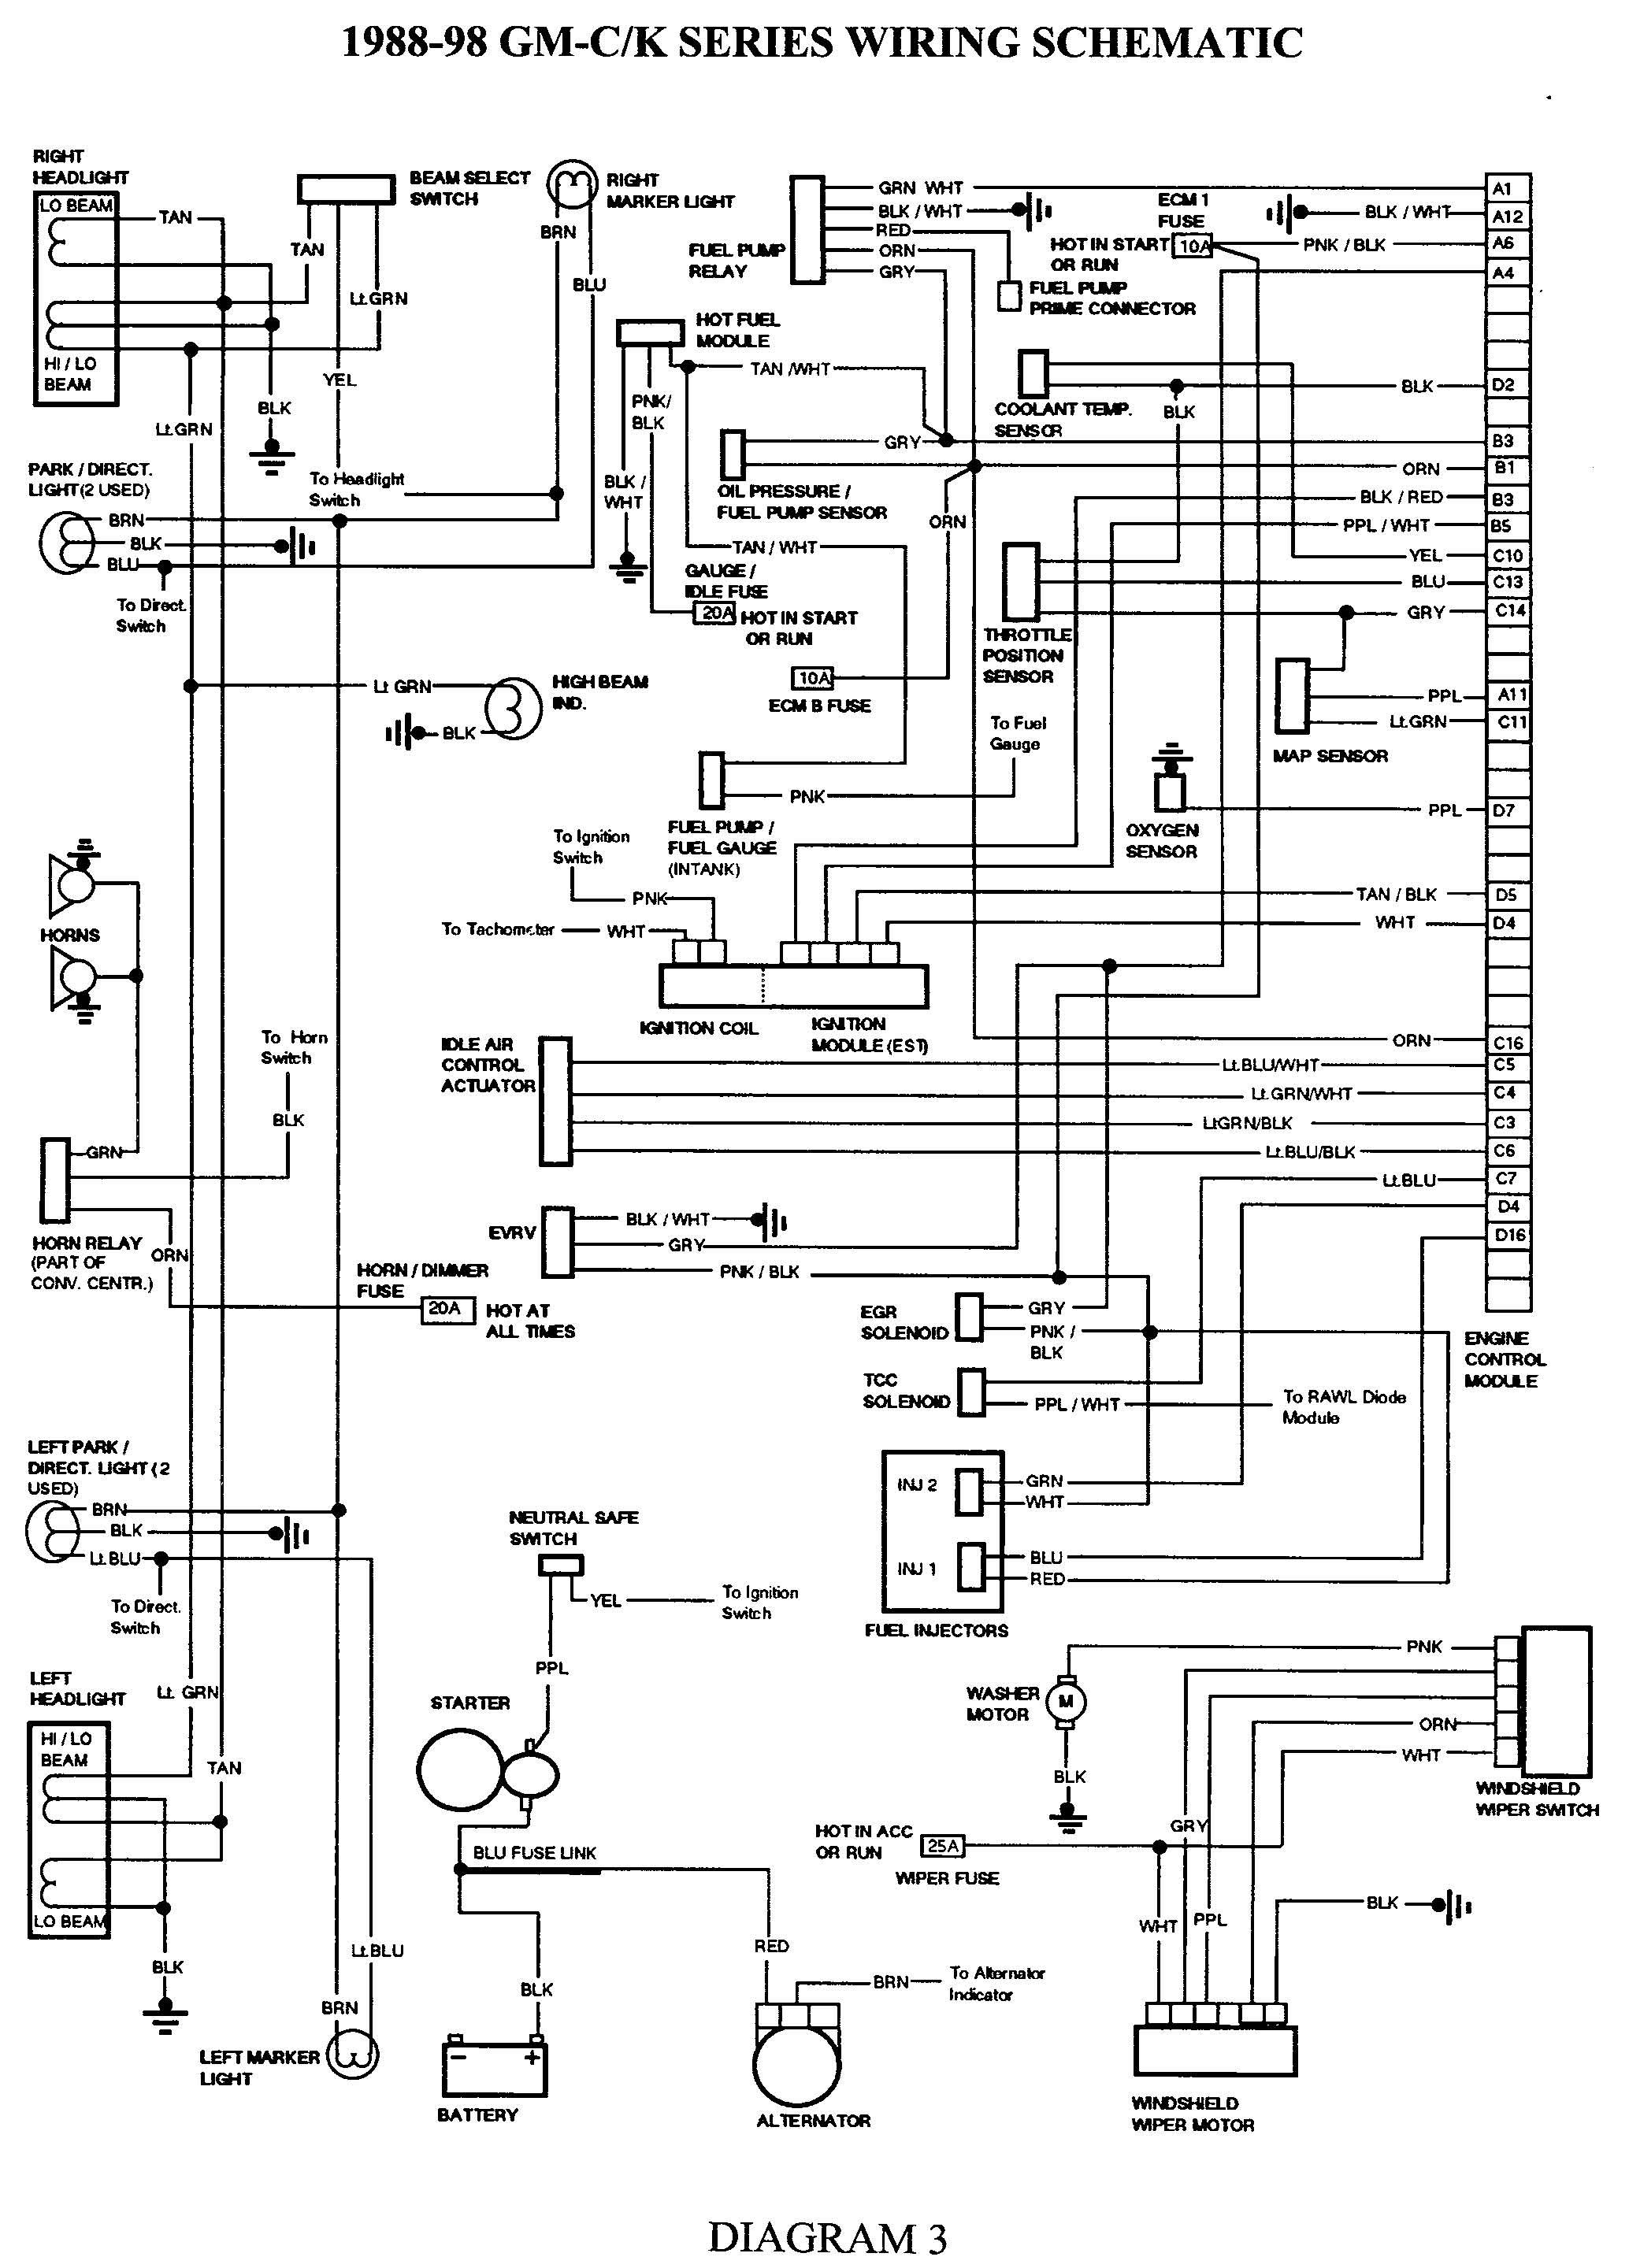 1985 Chevy Starter Wiring Diagram | Manual E-Books - Chevy Starter Wiring Diagram